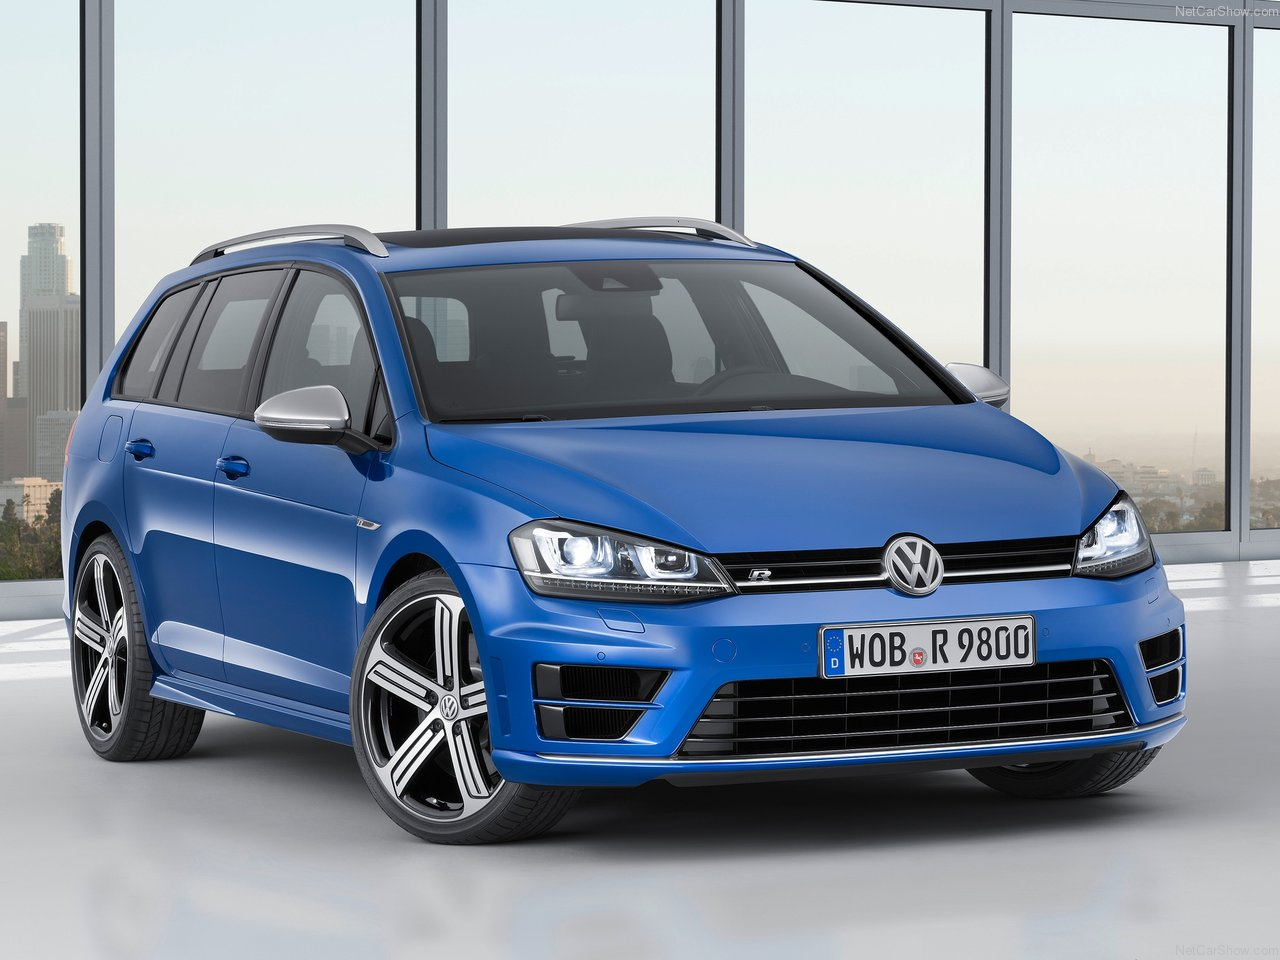 Volkswagen Golf R Variant photo 139828